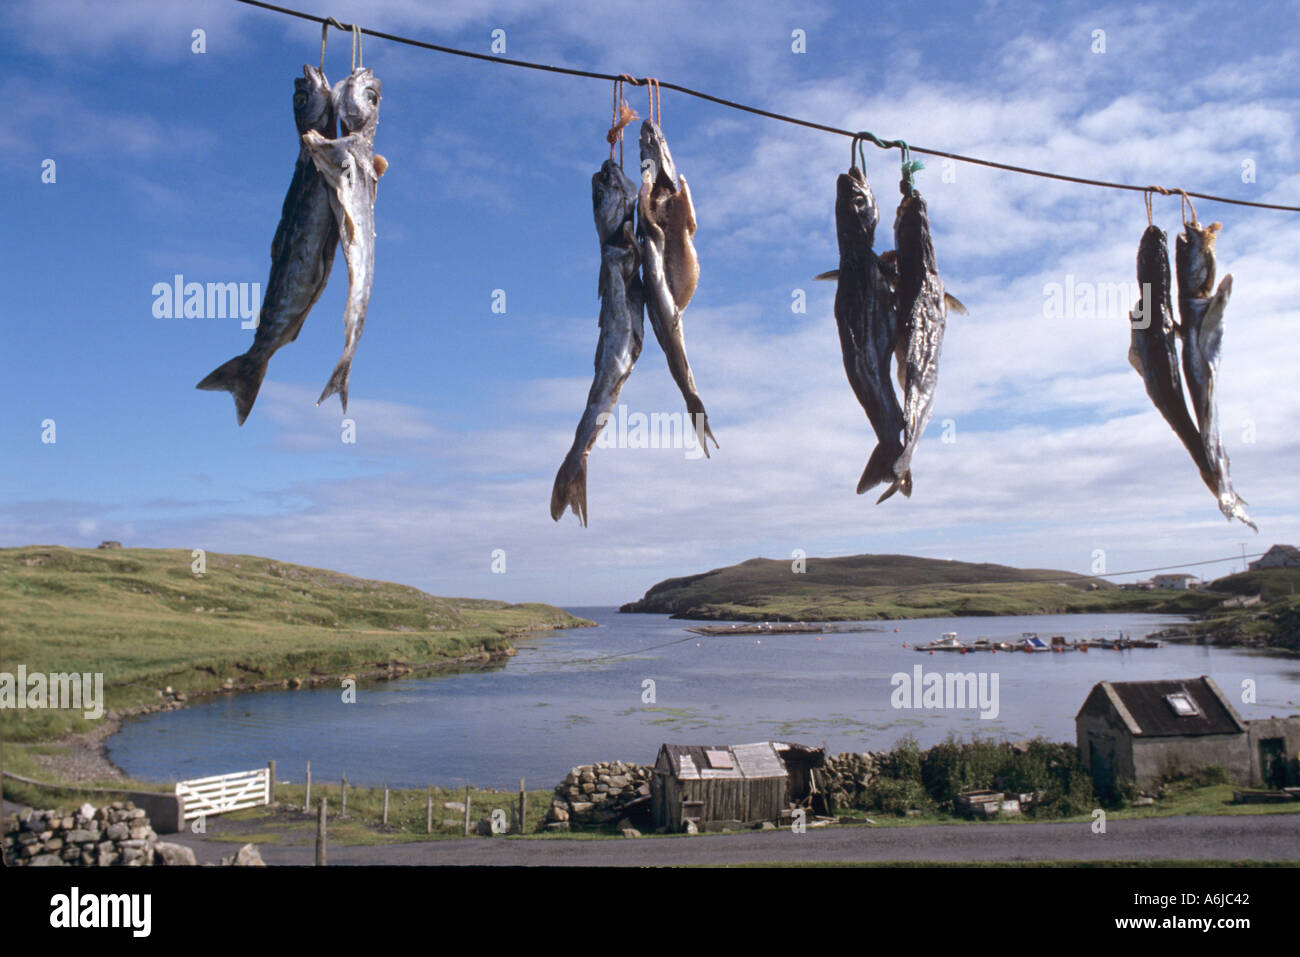 In Autumn pollack or saithe are hung up in pairs air dried and salted for traditional winter food Shetland UK - Stock Image